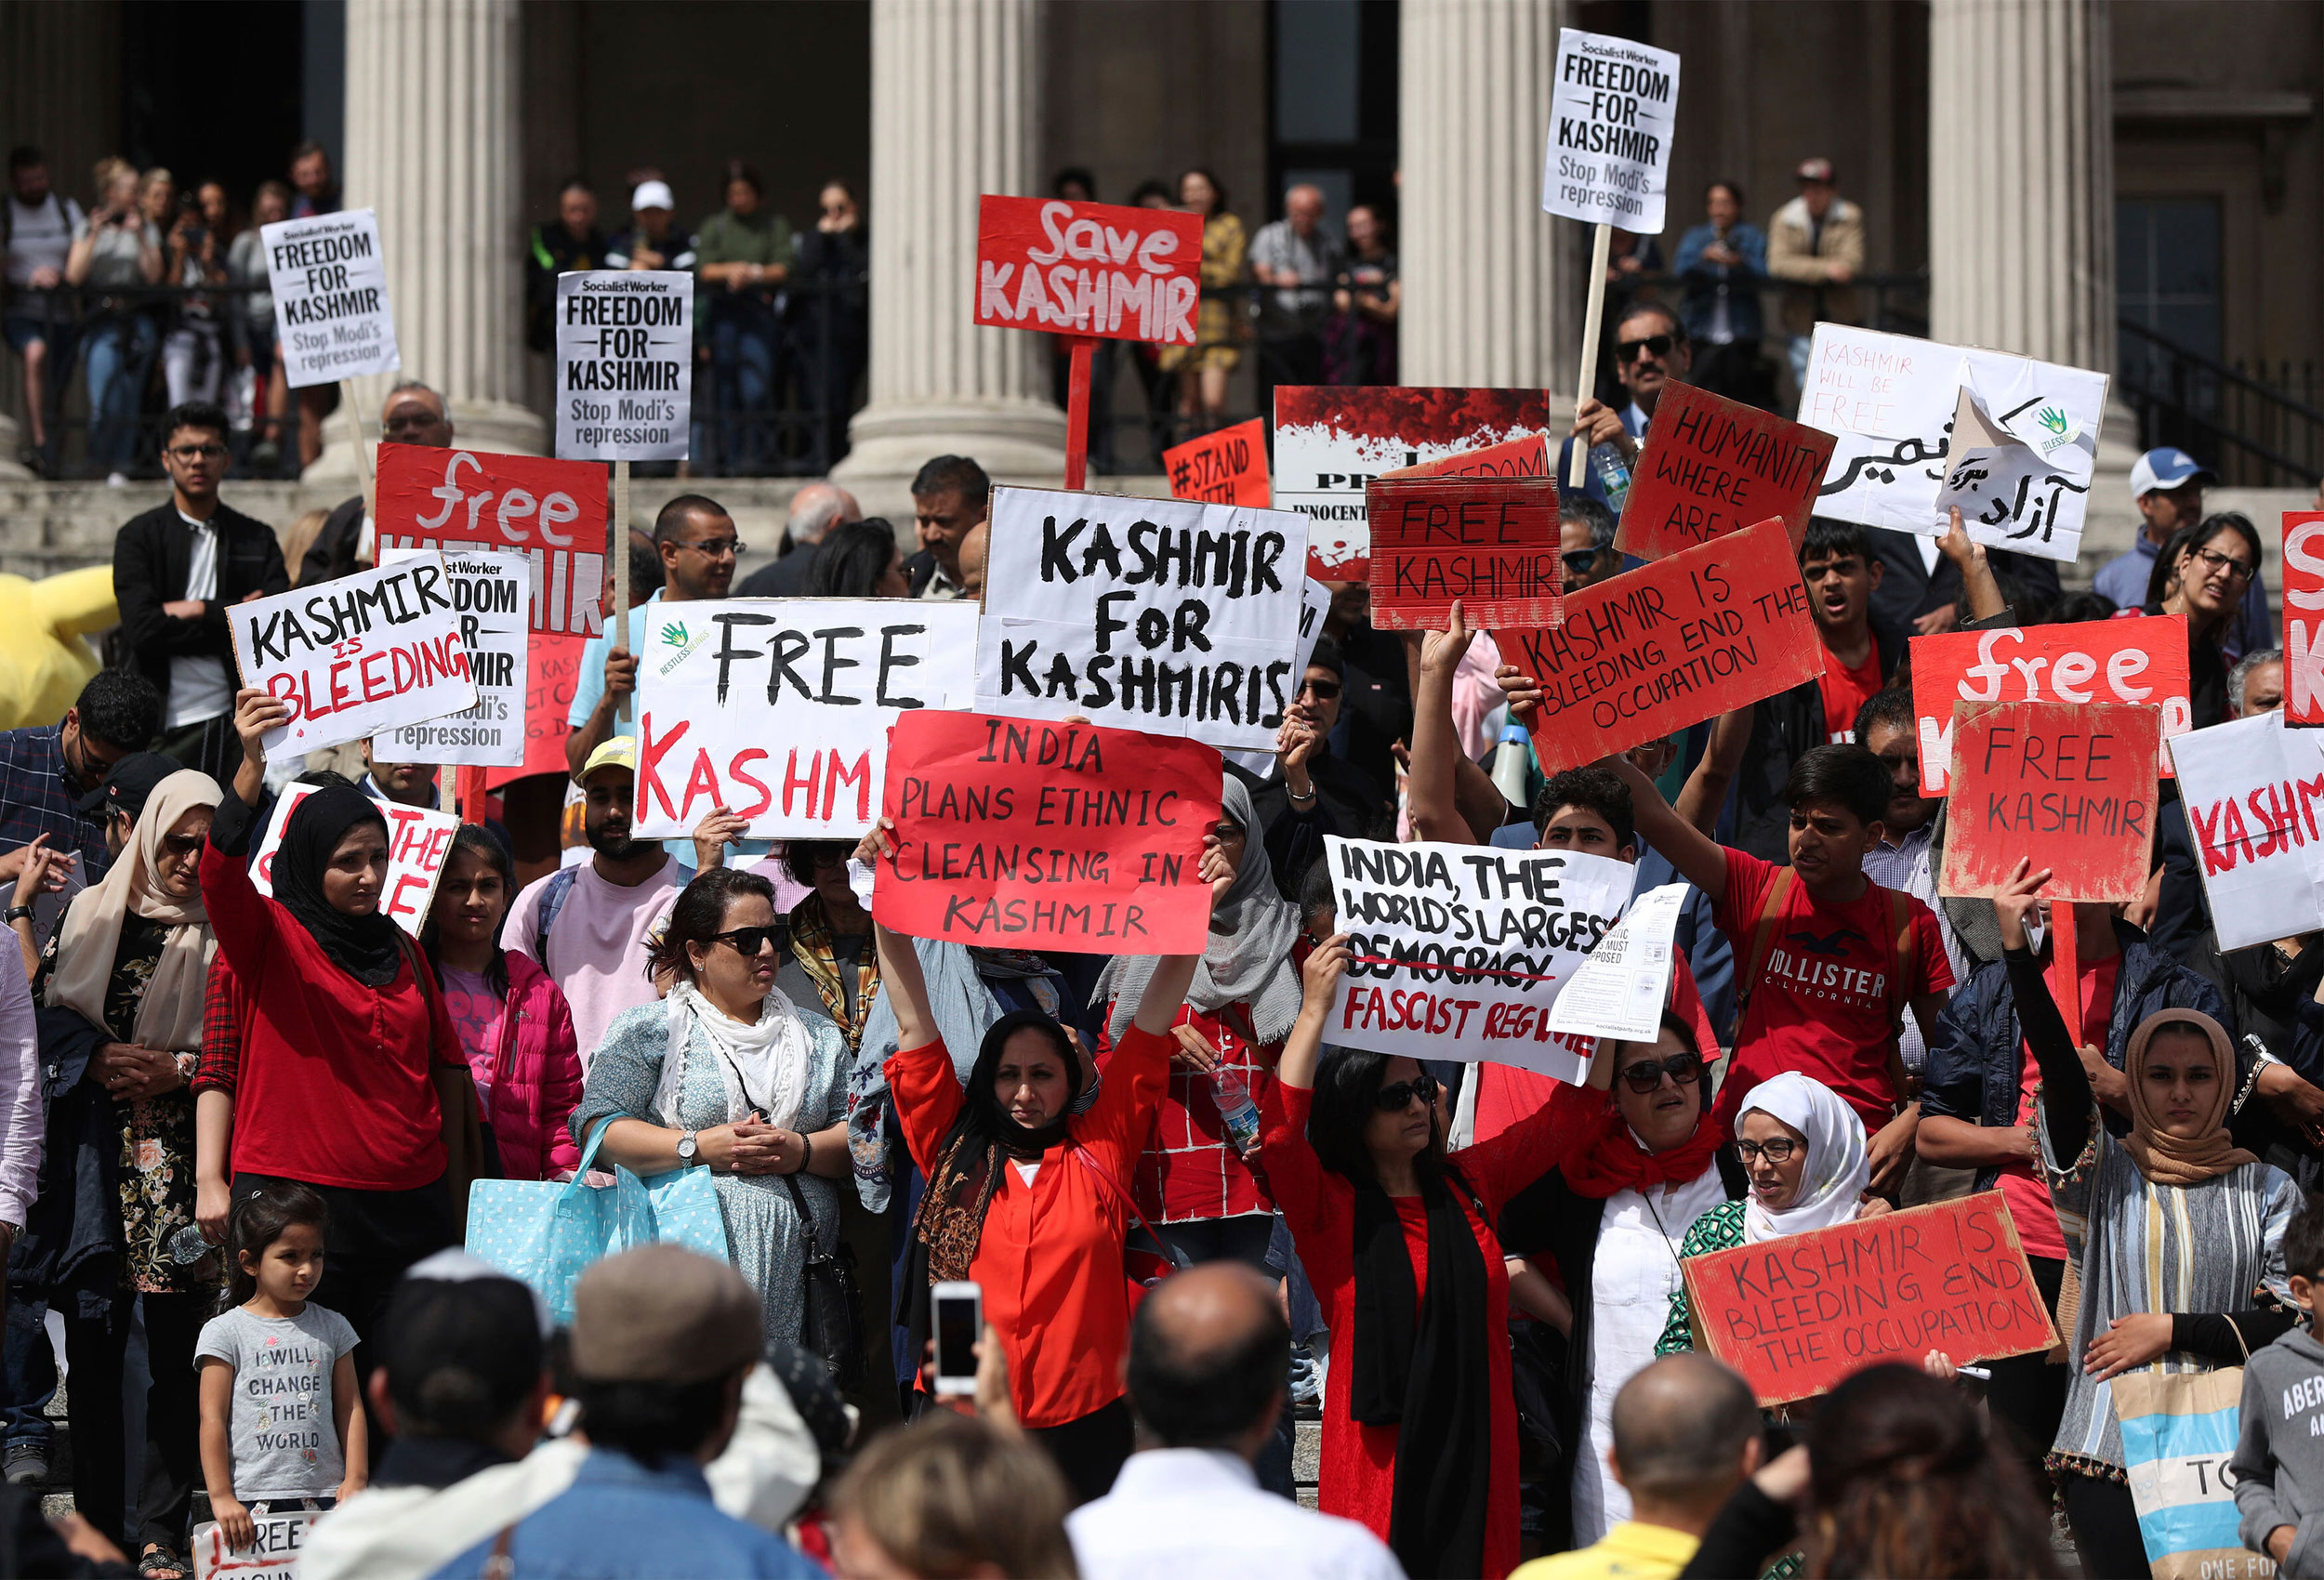 Demonstrators wave various signs during a Freedom For Kashmir protest against the government in central London on August 10, 2019.